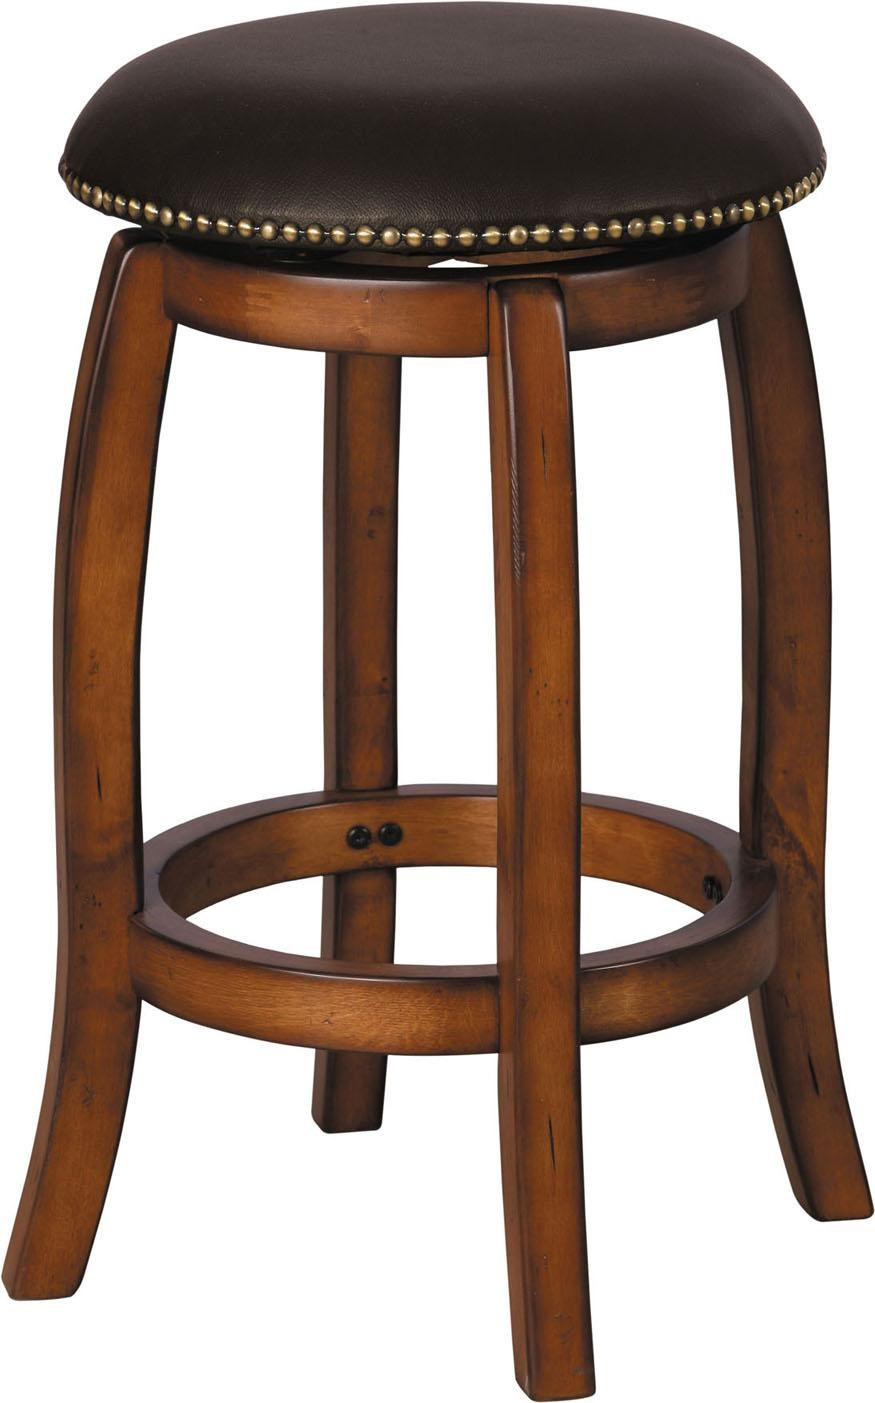 Acme Furniture Chelsea Leather 07247 Swivel Counter Stool  : chelsea20leather20 2043335201007247 b0jpgscalebothampwidth500ampheight500ampfsharpen25ampdown from www.delsolfurniture.com size 500 x 500 jpeg 29kB